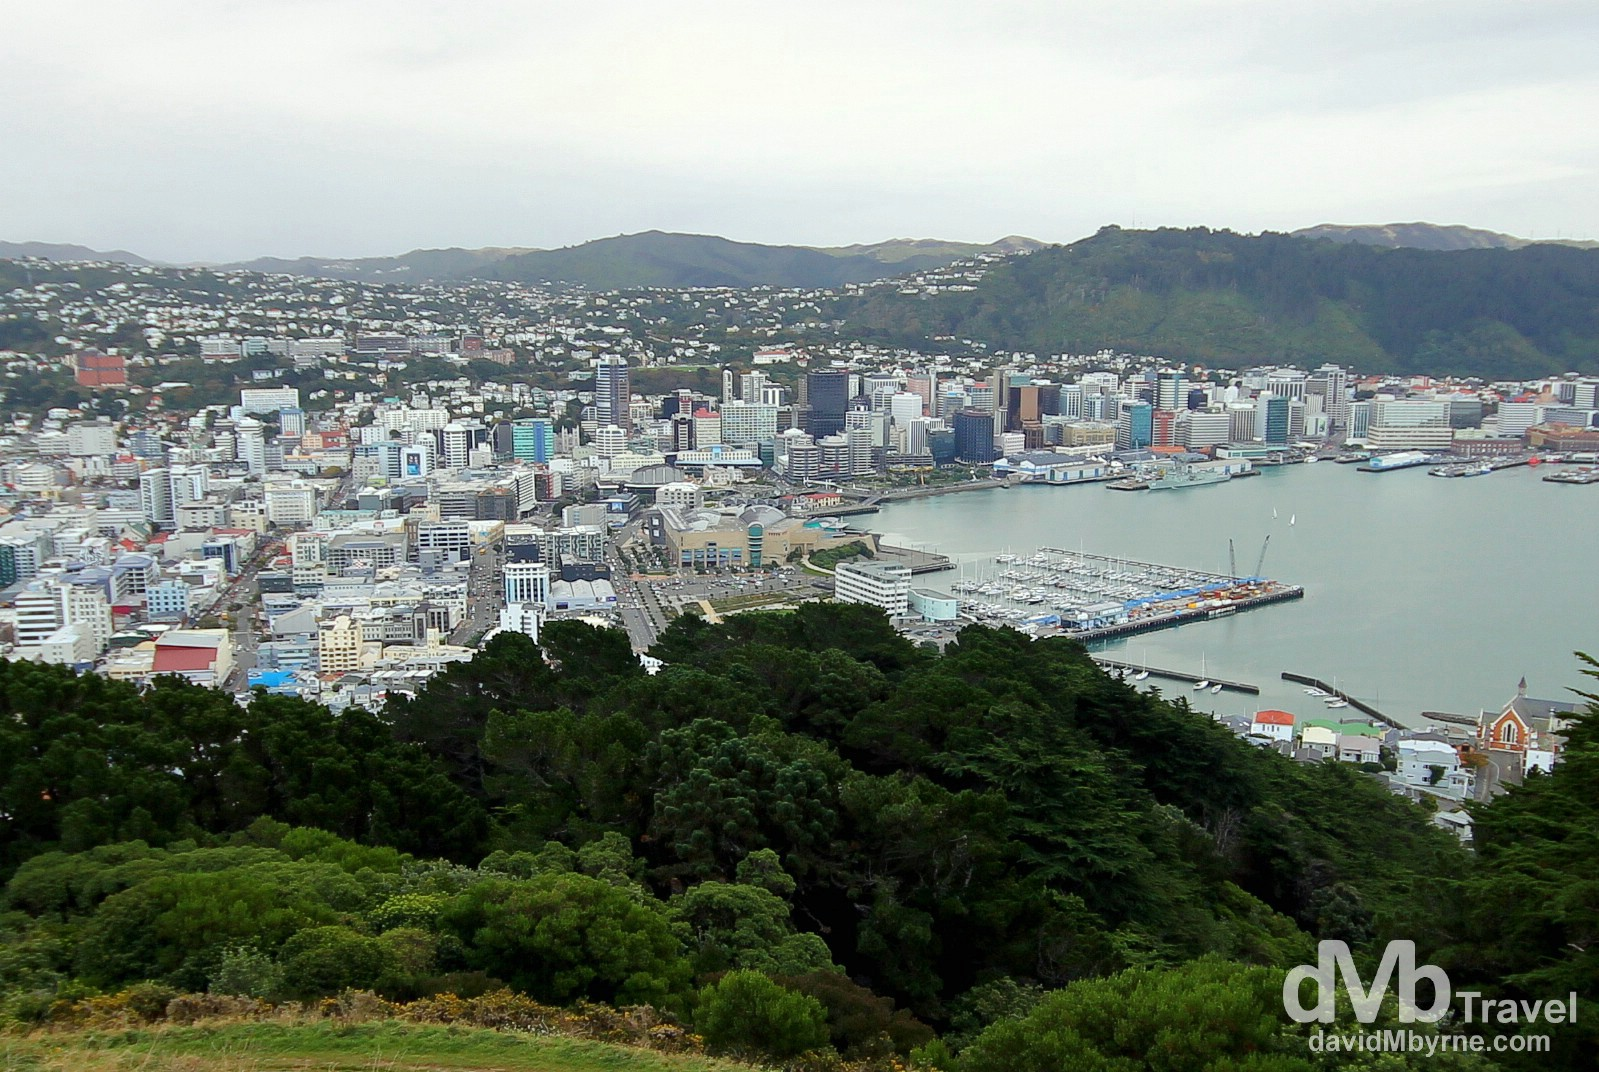 Wellington, North Island, New Zealand, as seen from the Mount Victoria lookout over the city. May 11th 2012.